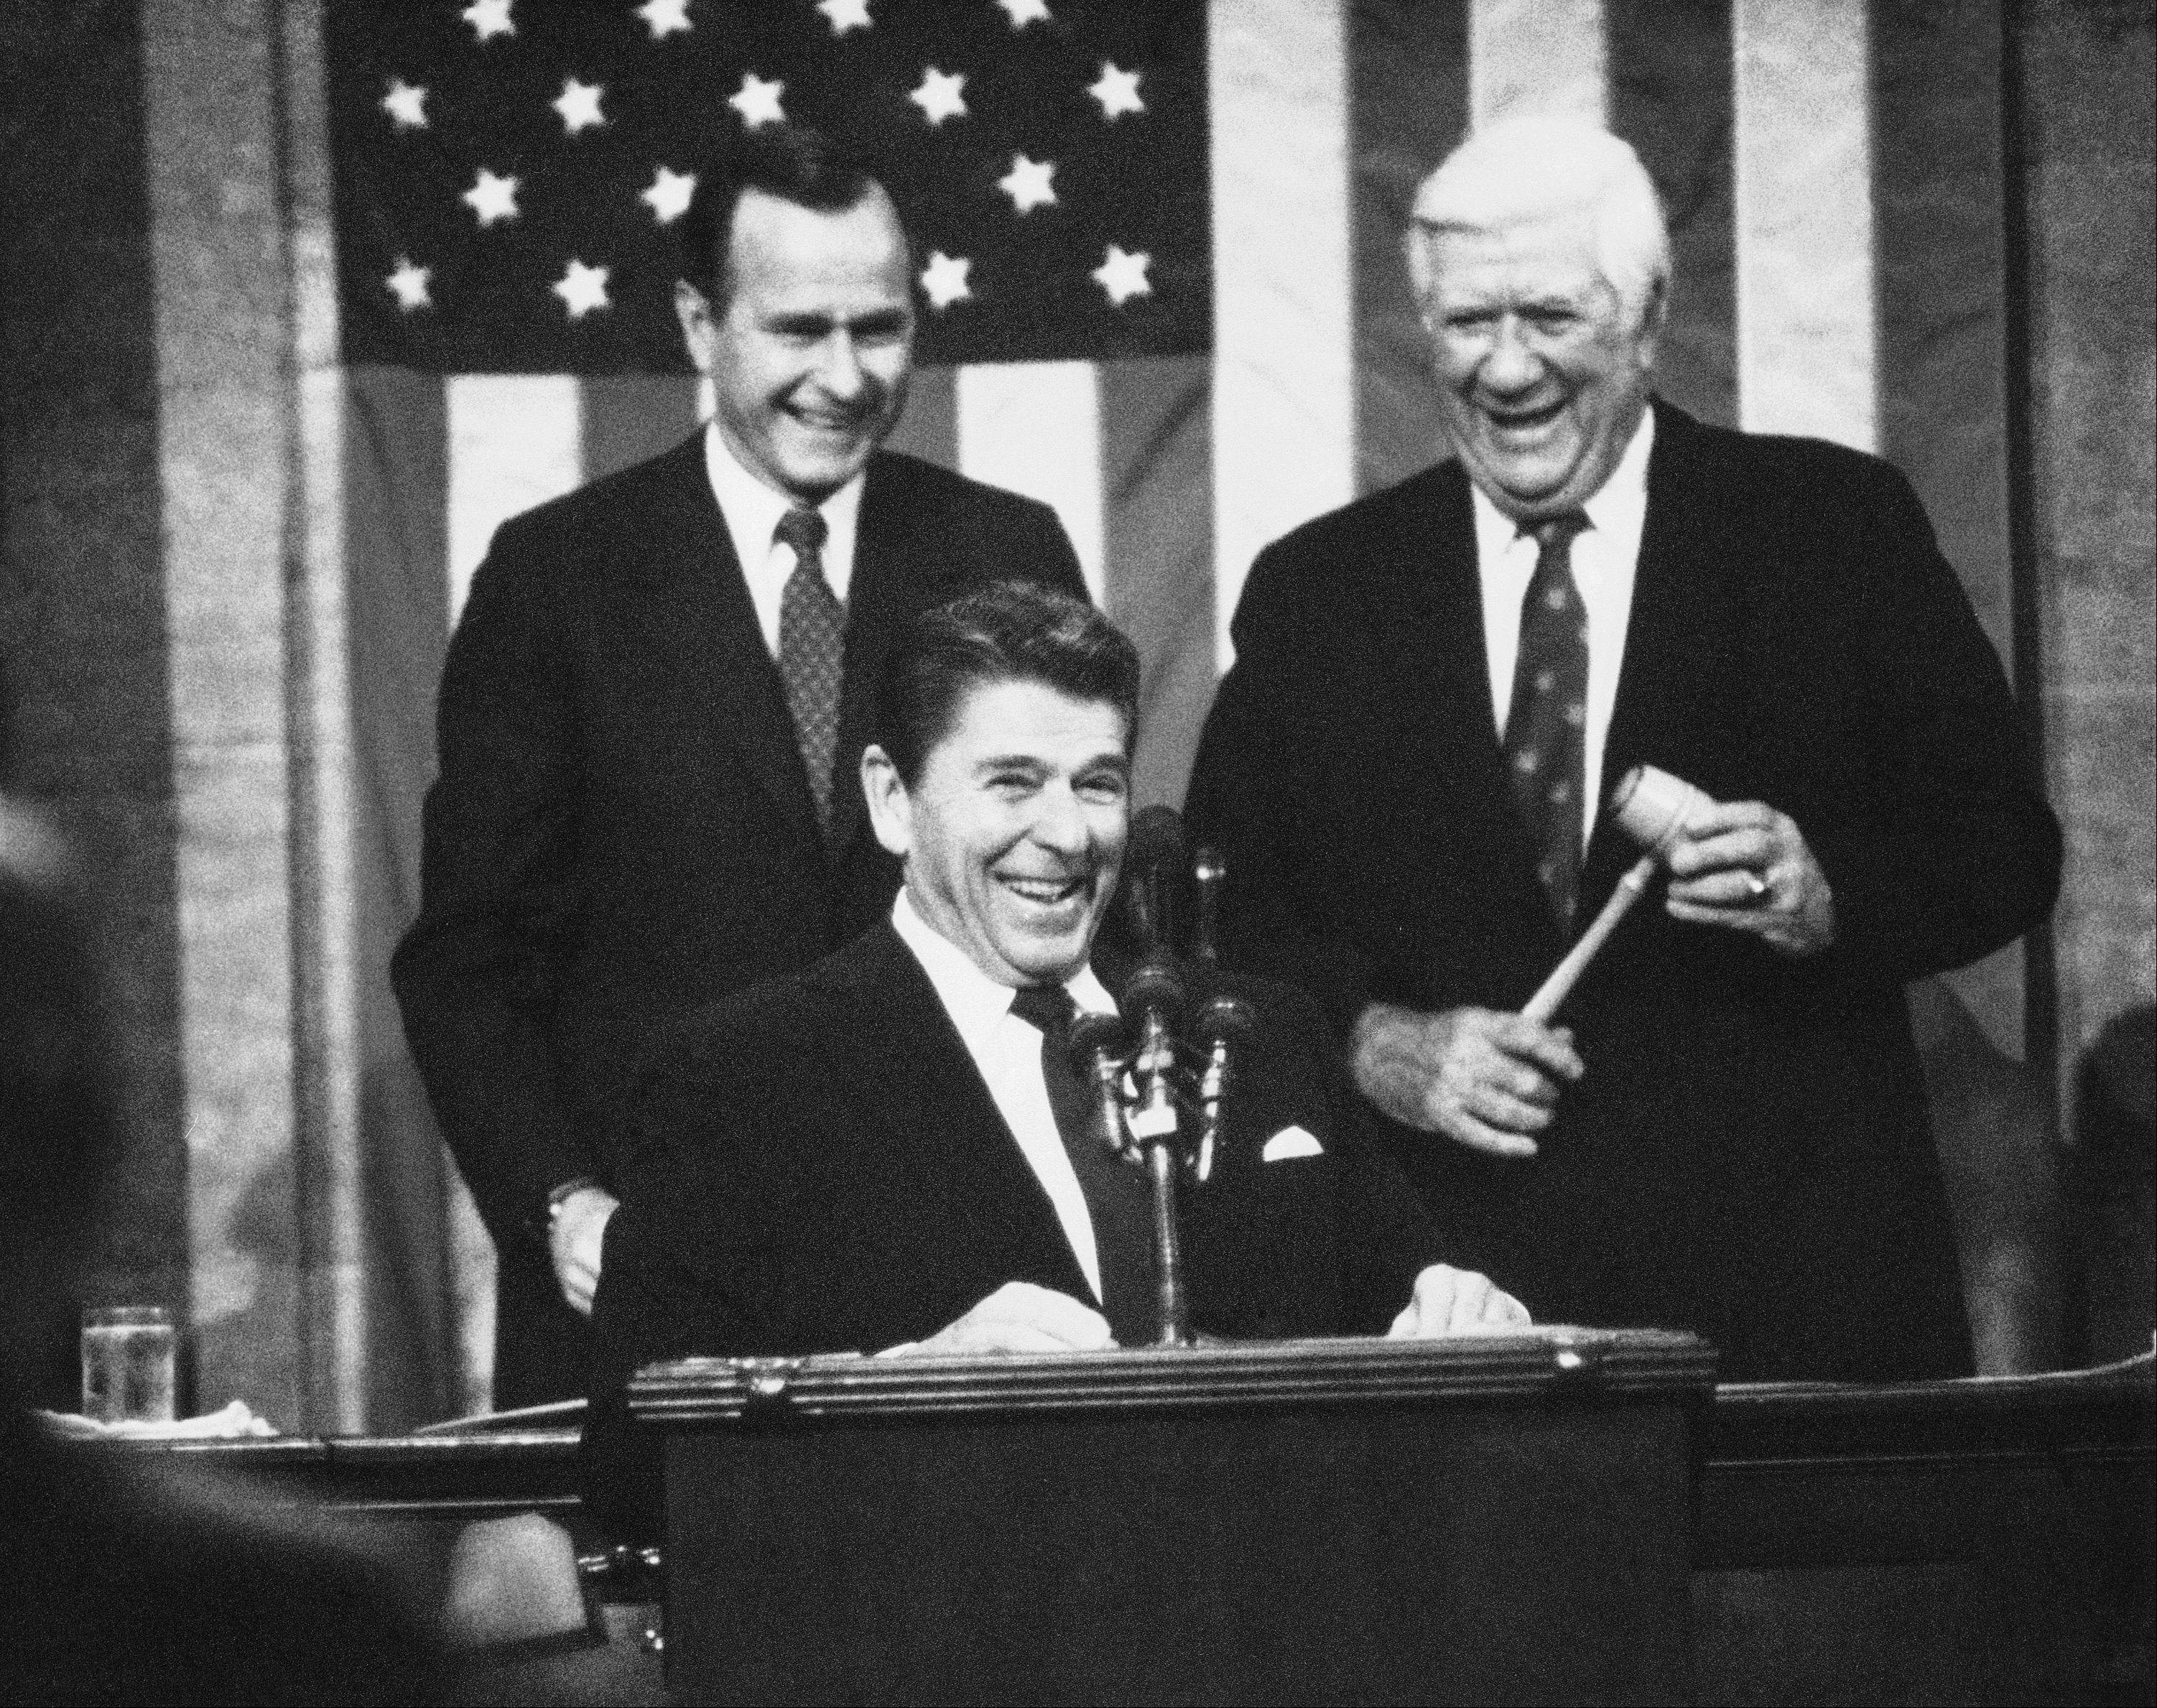 President Ronald Reagan is applauded prior to making his State of the Union Address Jan. 25, 1983. Vice President George Bush is at left, and House Speaker of the House Thomas P. O�Neill Jr. is at right.